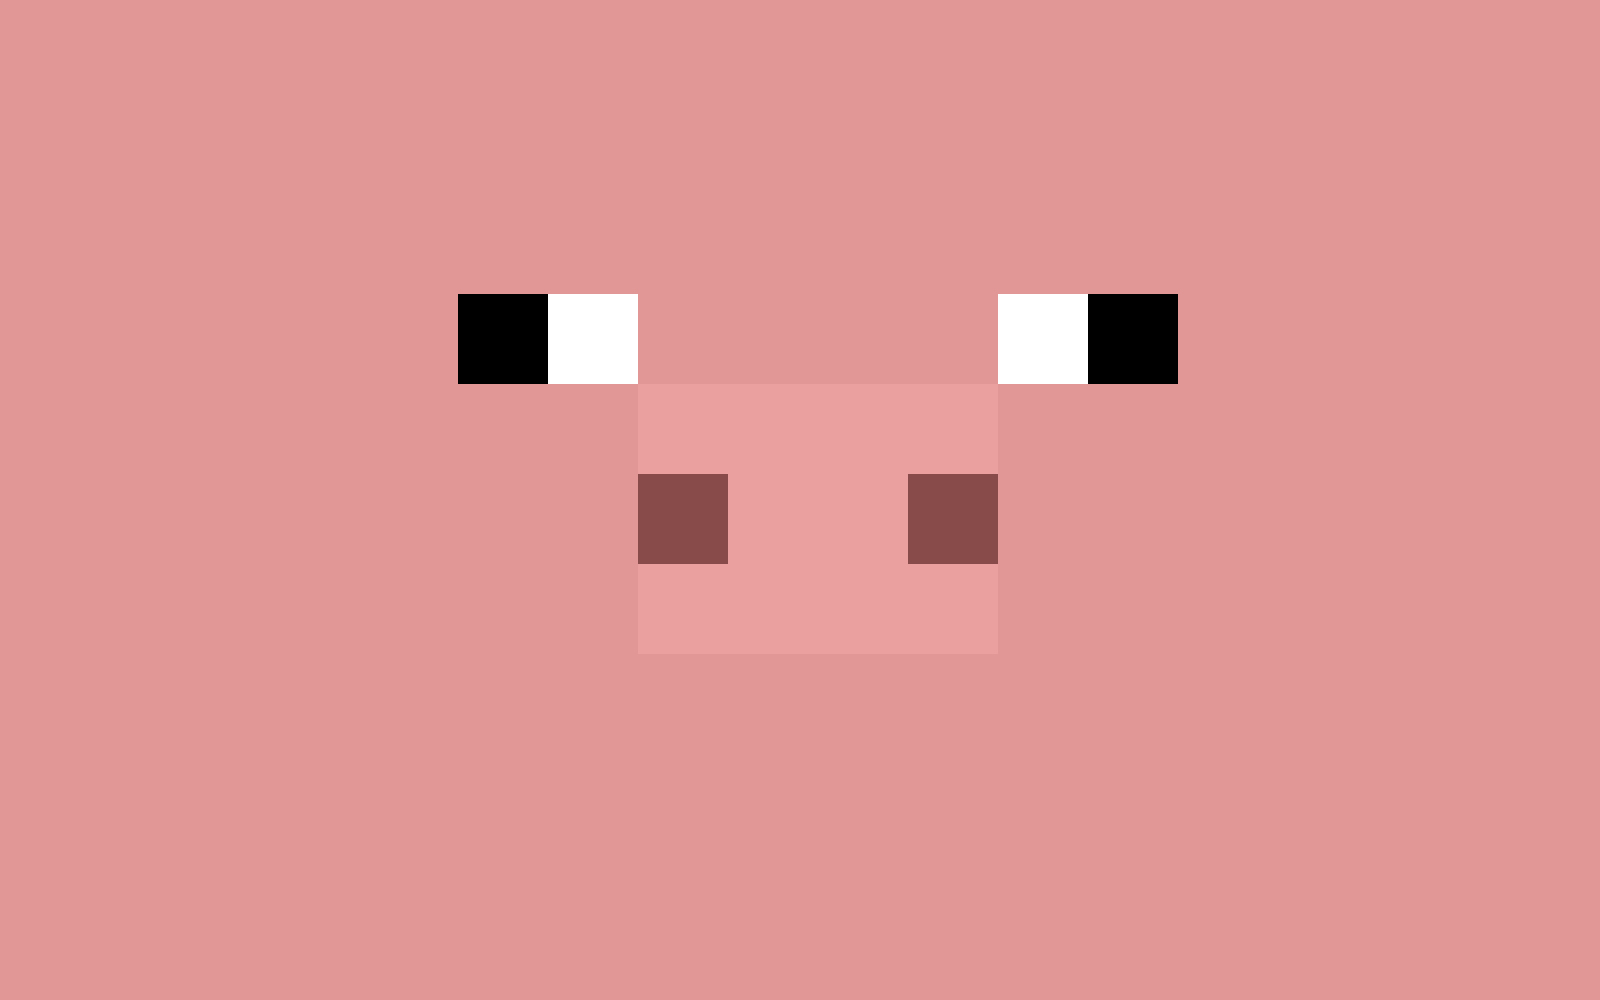 Minecraft Pig Face 7 Best Images of Minec...